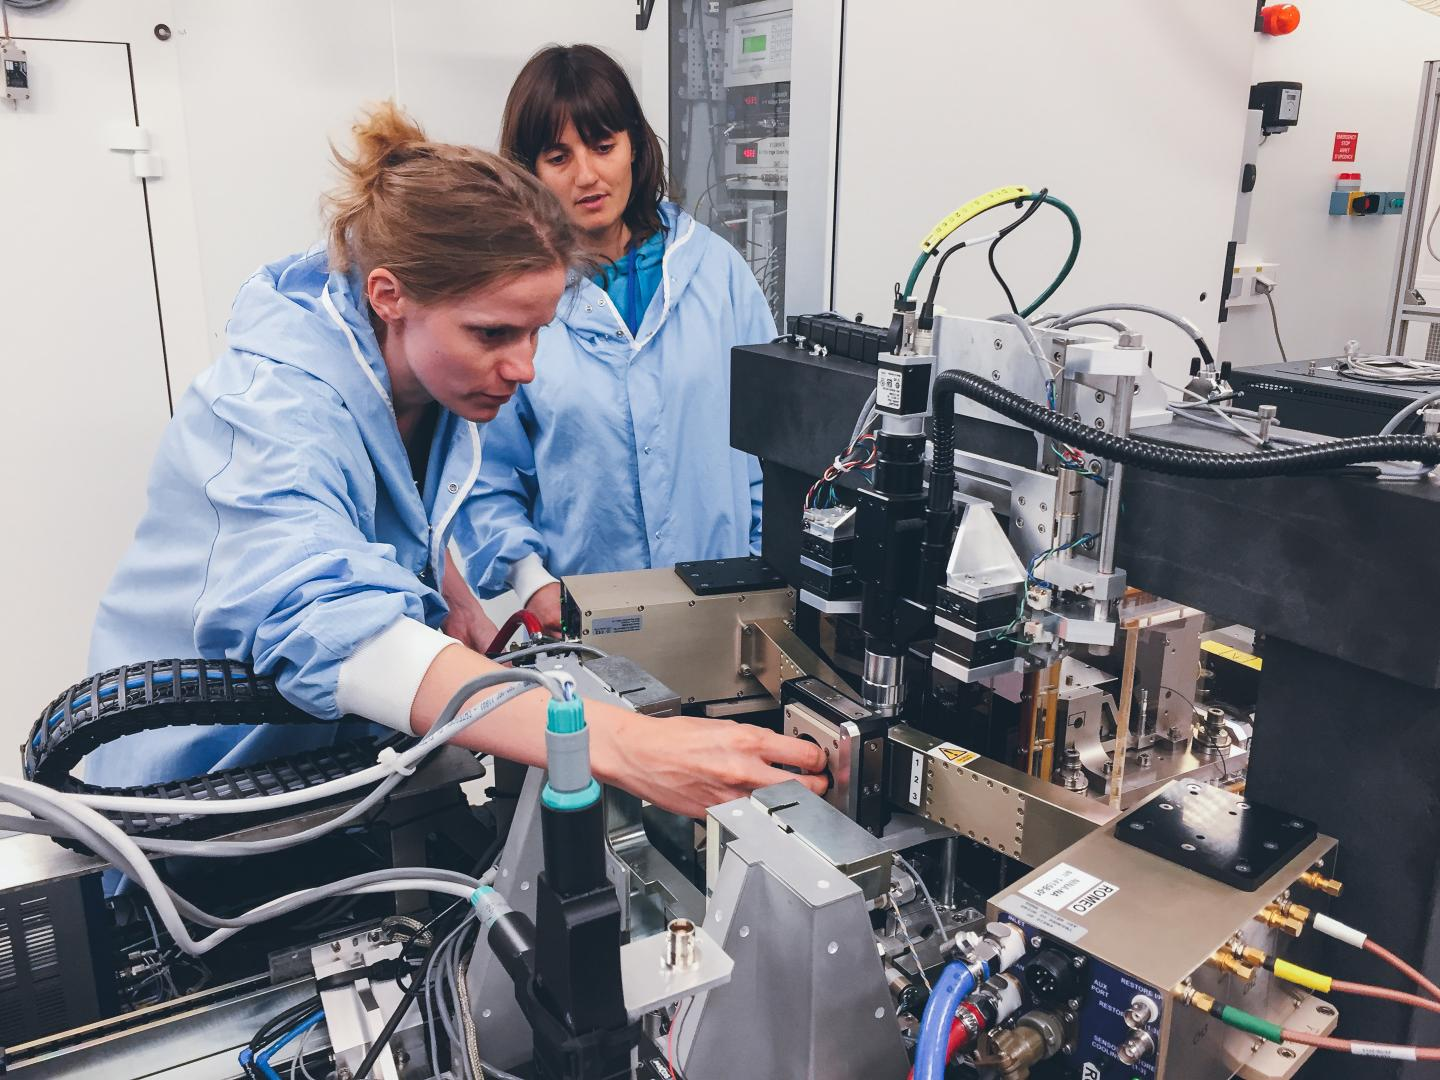 Ines Schreiver During Experiments at the ESRF